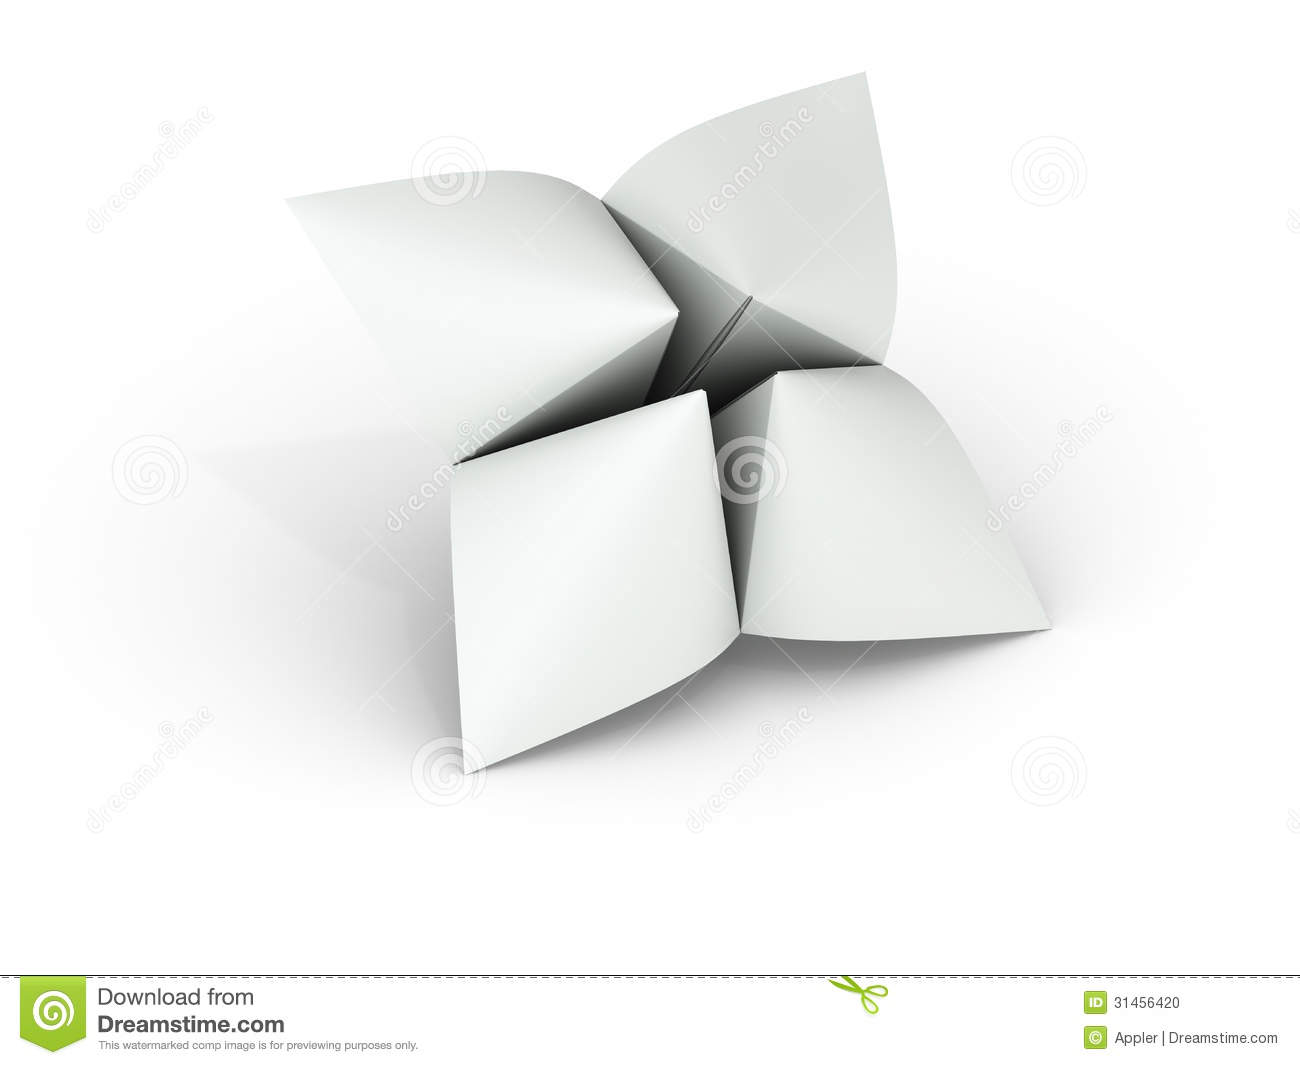 Blank Paper Fortune Teller Stock Photo - Image: 31456420 - photo#45